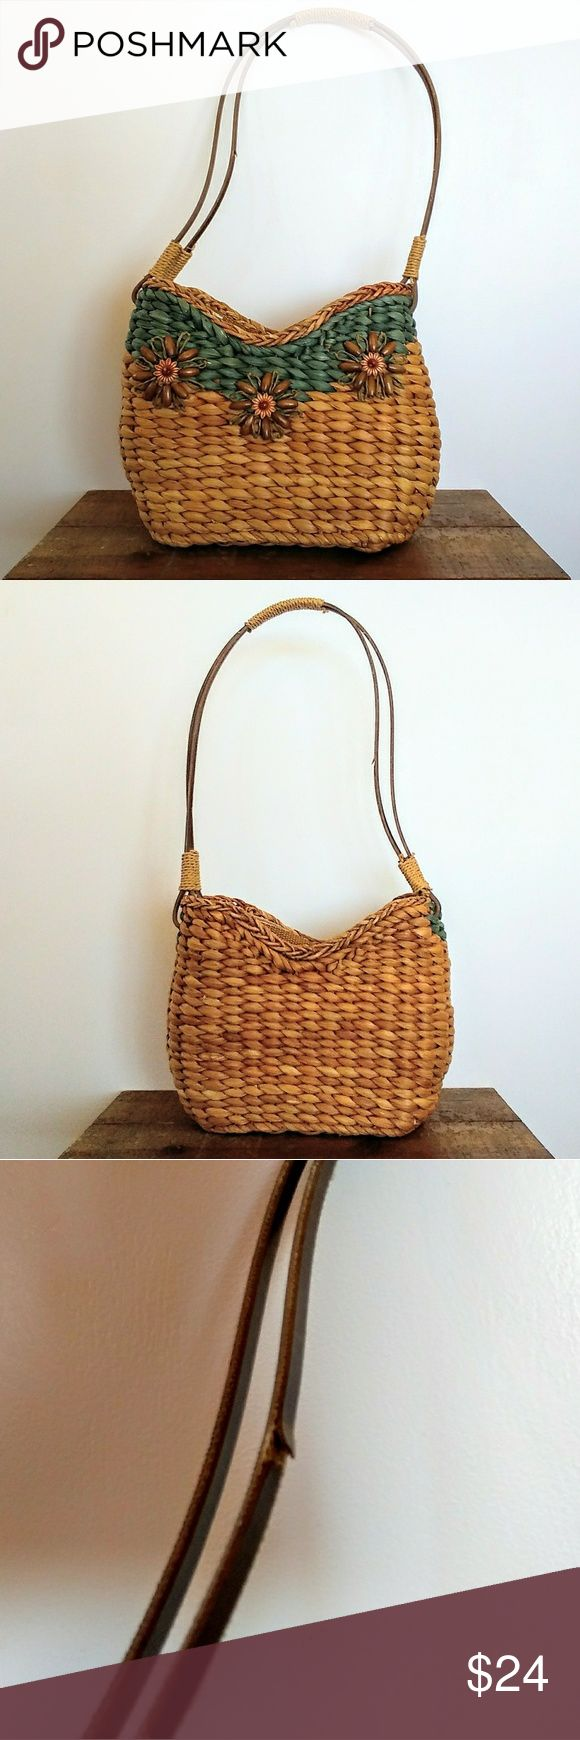 Sun N Sand Small Woven Straw Basket Bag Great summer bag from Sun N Sand. Woven straw body with beaded flower detail on the front and tan cotton lining. Top zip closure with a small zip and a small open pocket inside. Excellent condition with a few small loose threads and straw strands, and one crack in the plastic coating on the strap (last pic).  Height: 7.5 inches Length: 8 inches Depth: 3.5 inches Strap drop: 12 inches Sun N Sand Bags Shoulder Bags